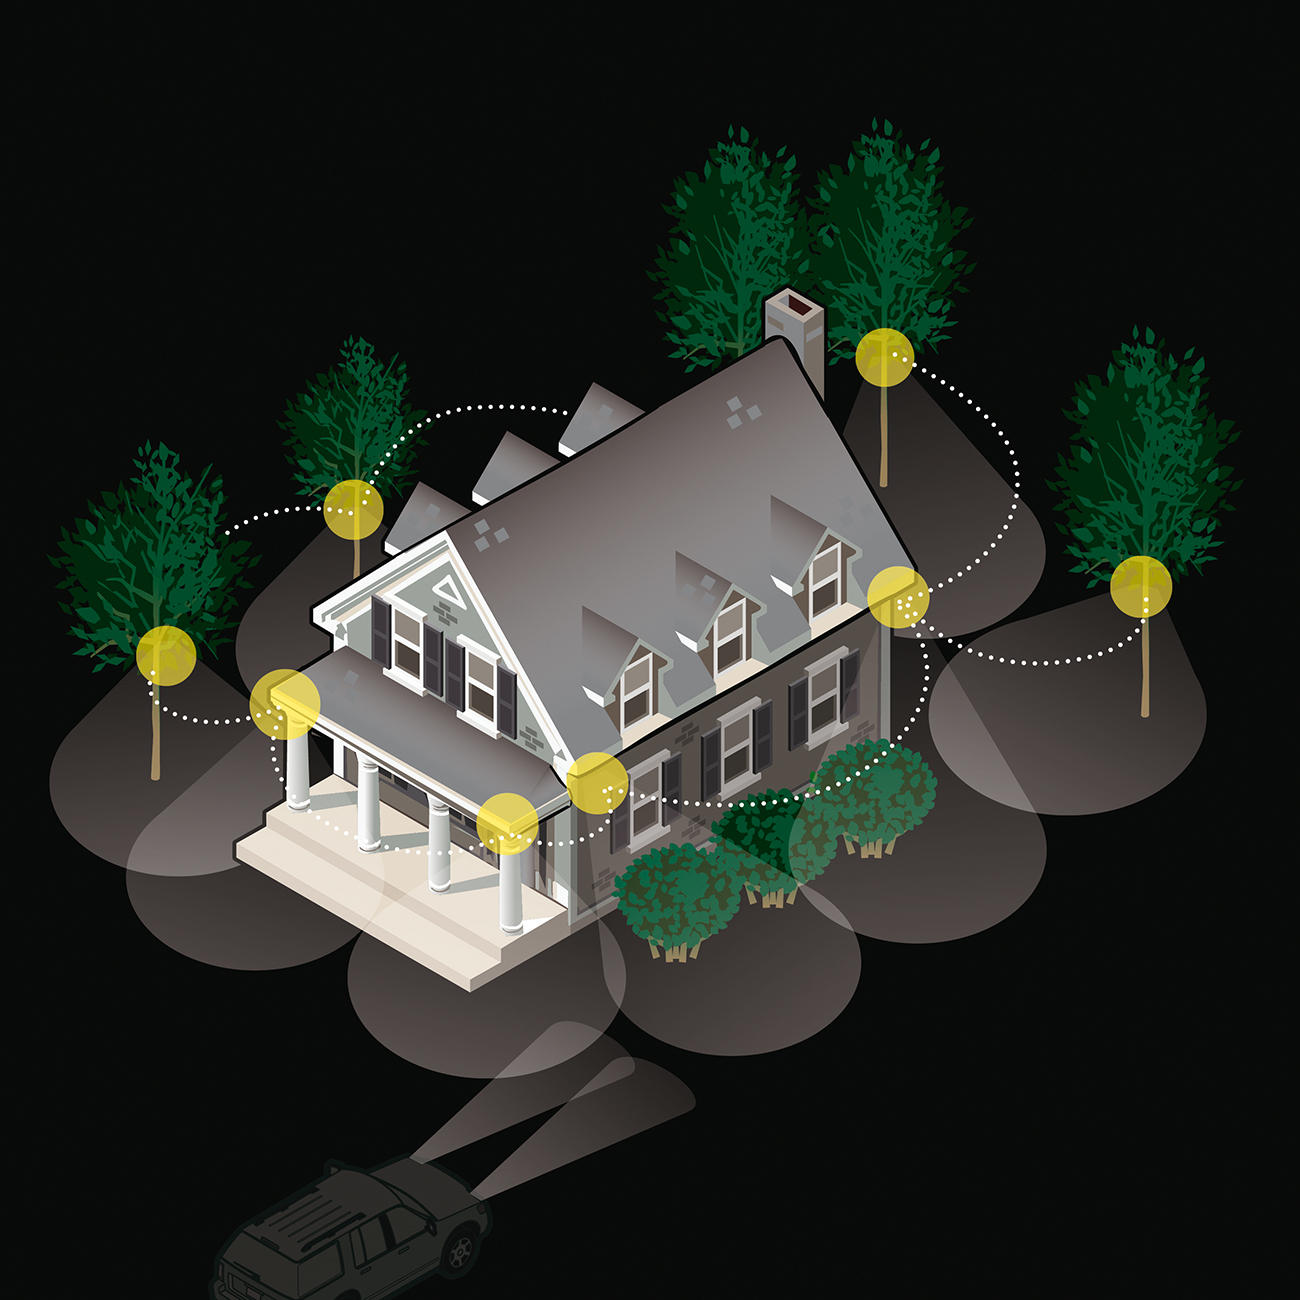 the concept of wireless security From traditional alarms to wired systems, there has been considerable change in the way homes and businesses are secured and wireless security systems seem to be the most feasible option.